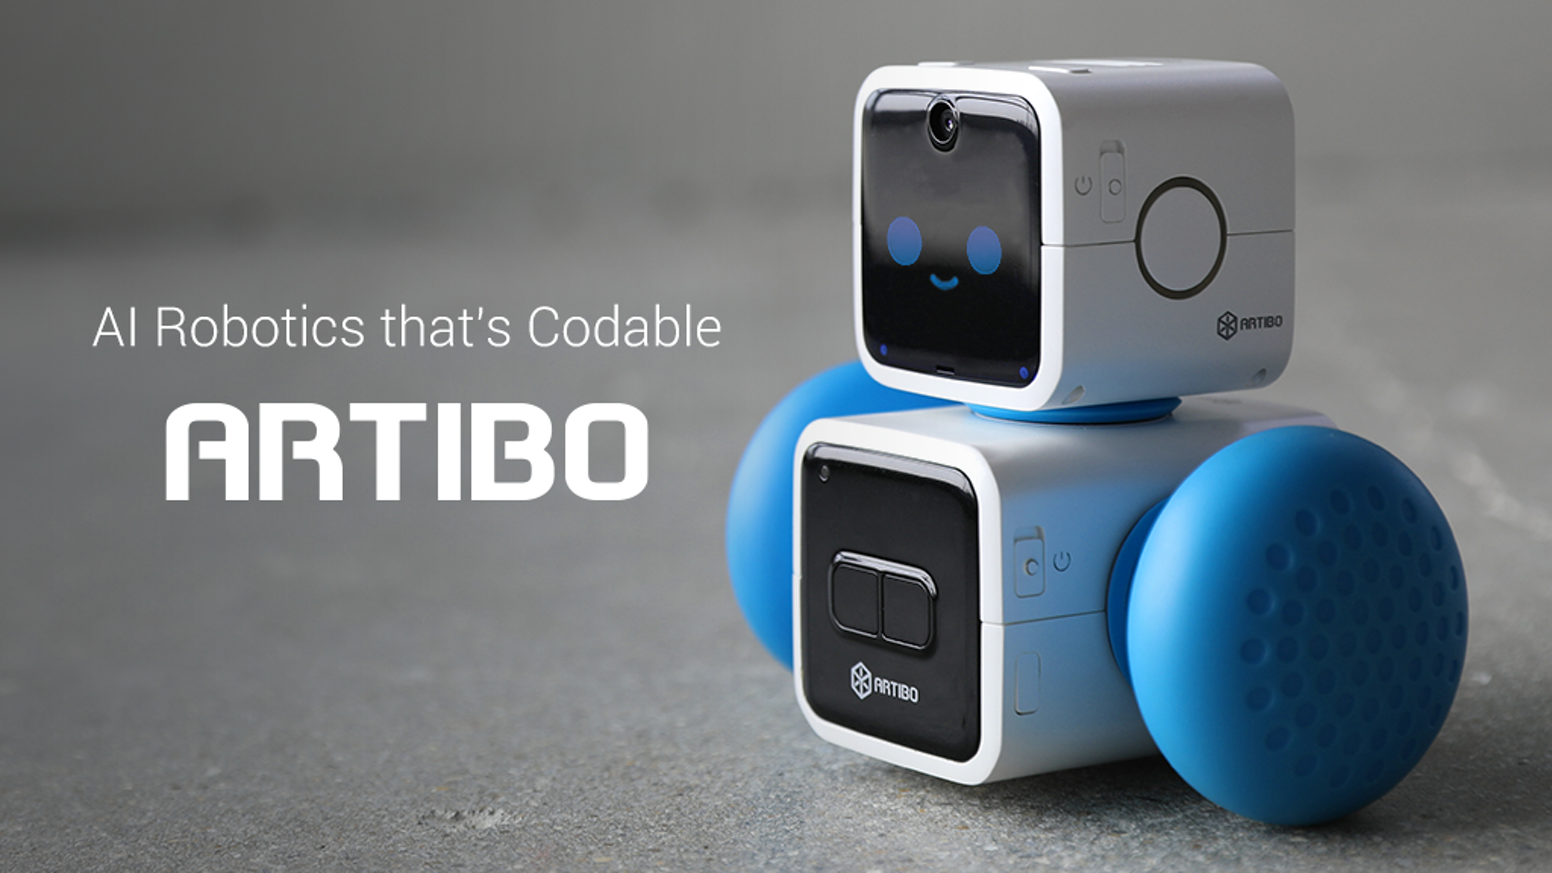 With a compact design and a variety of features & accessories, Artibo is an assistant, friend and entertainer all in one robot.